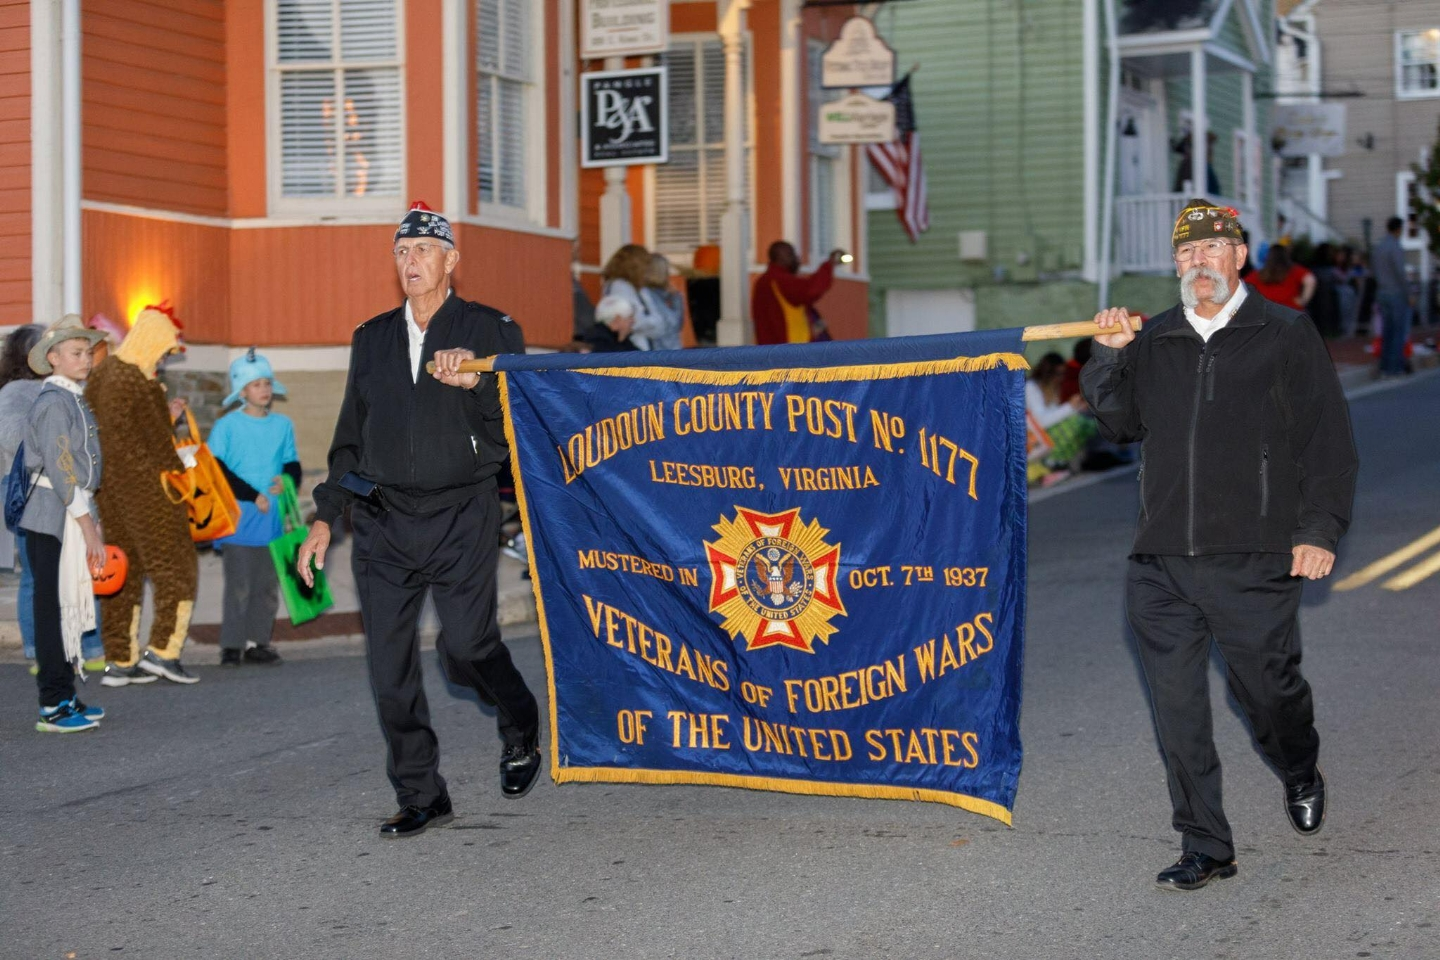 Comrades Phil Rusciolelli and Max Gutierrez lead the VFW Post 1177 contingent in the parade.  Photo Courtesy of Mark Mogle Photography - www.markmoglephoto.com